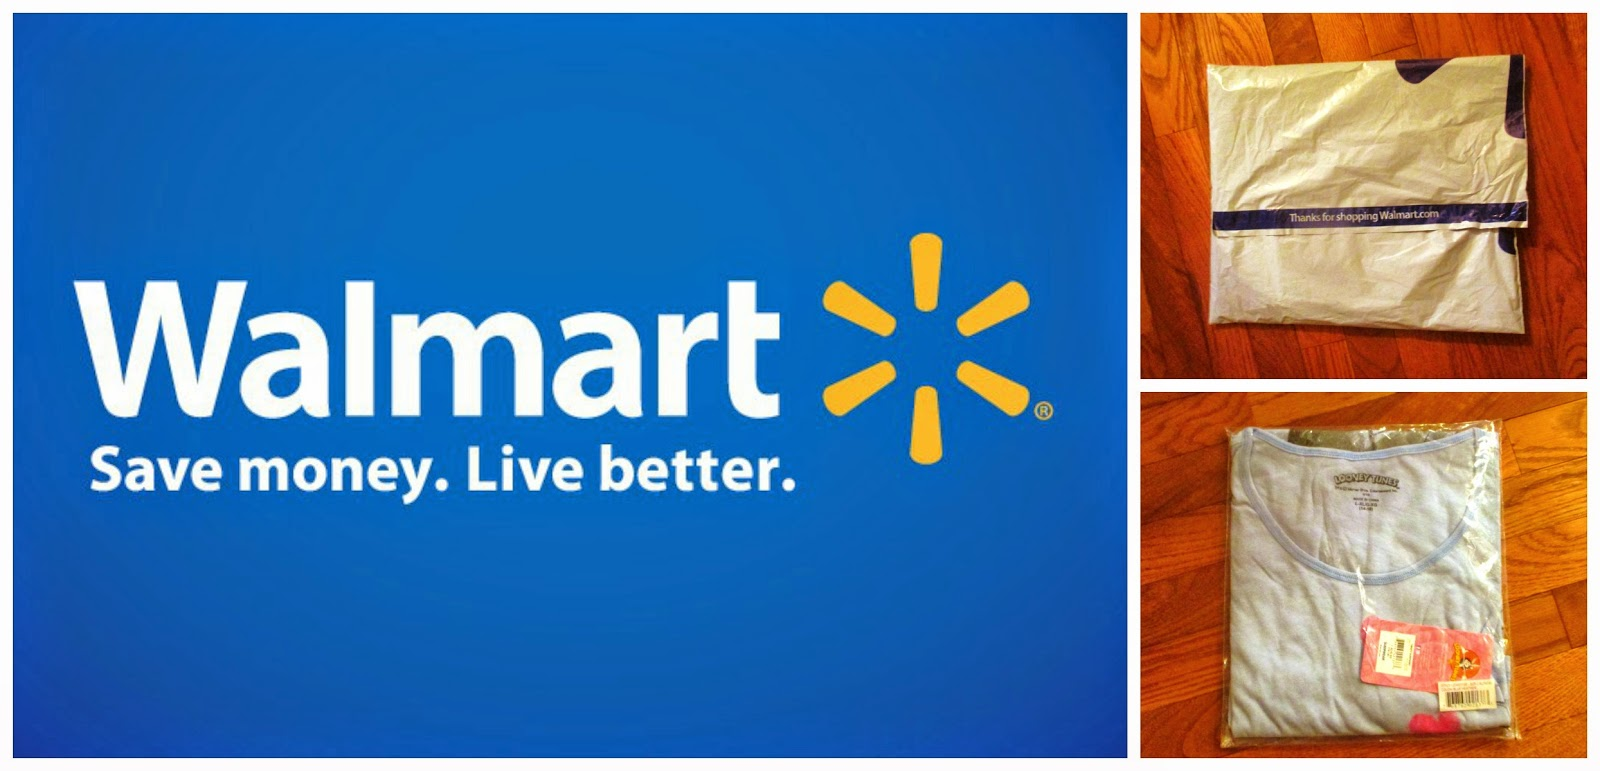 Ic Free Shipping >> Walmart Online Shopping Review + I Received a Refund and a ...